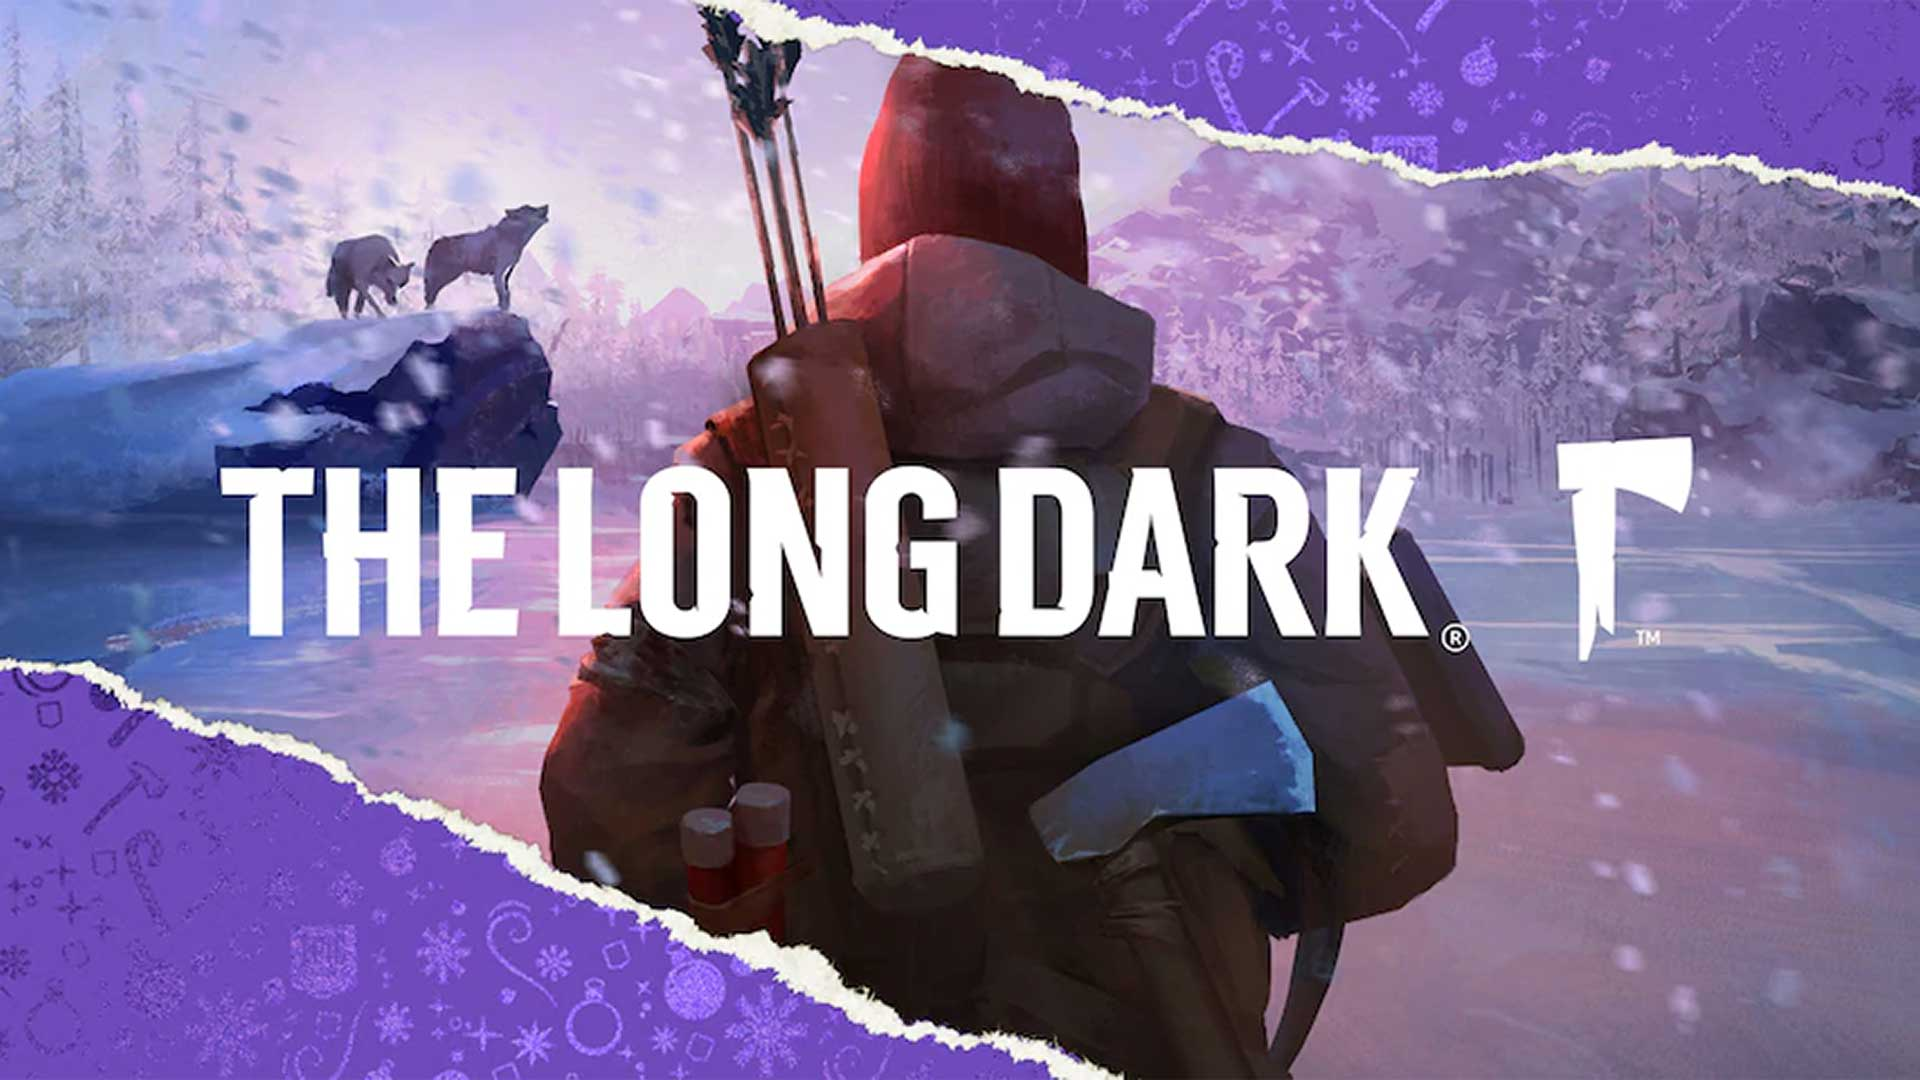 the long dark egs free game